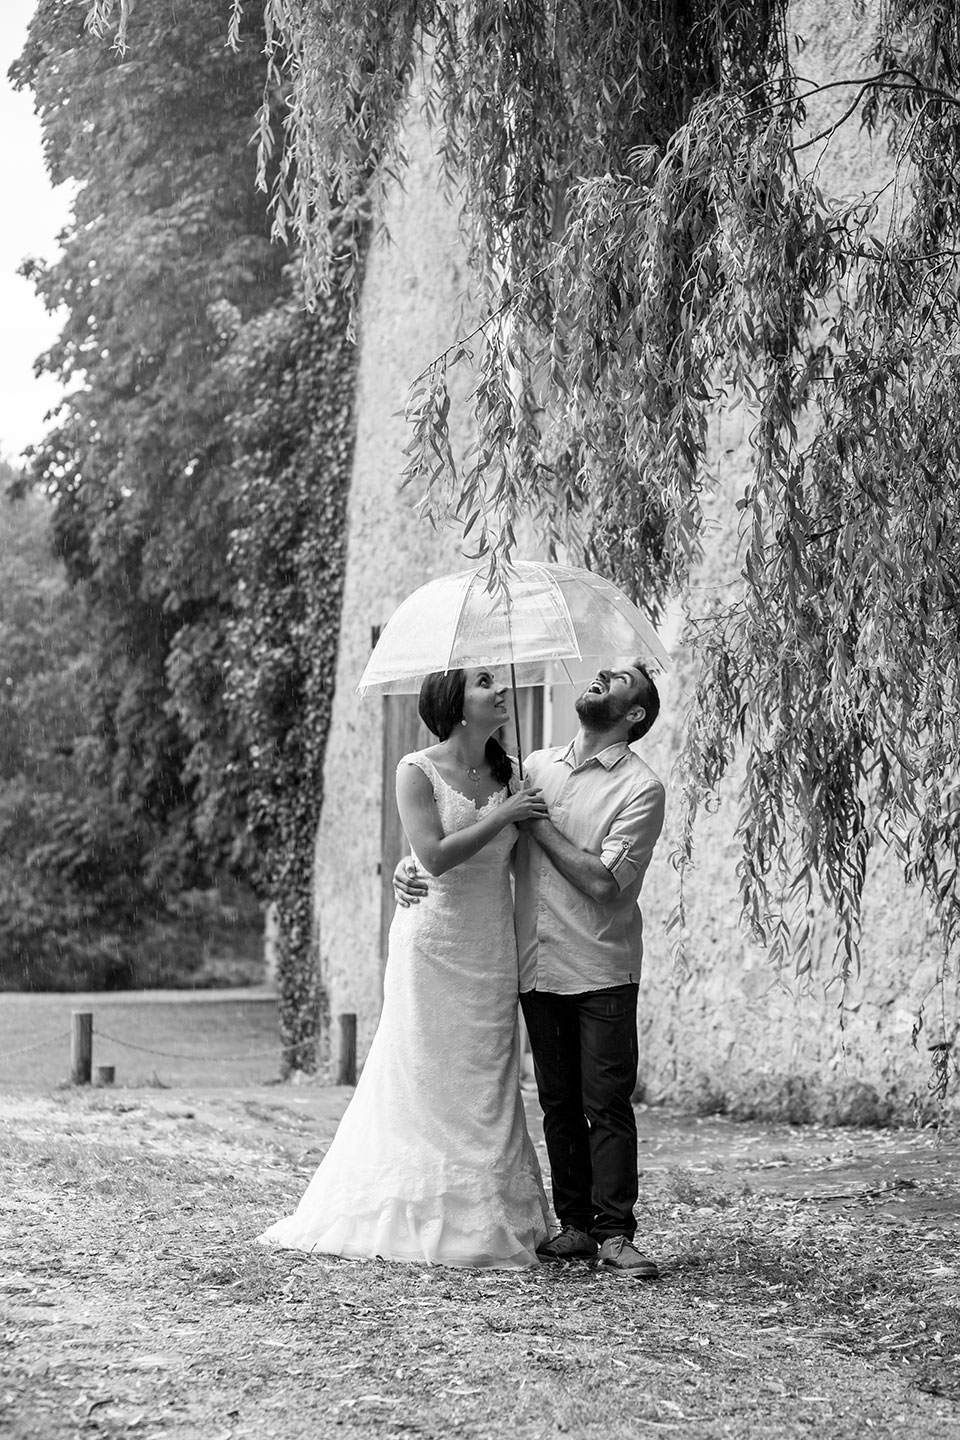 particuliers-evenements-mariage-oui-carla&jeremy-26